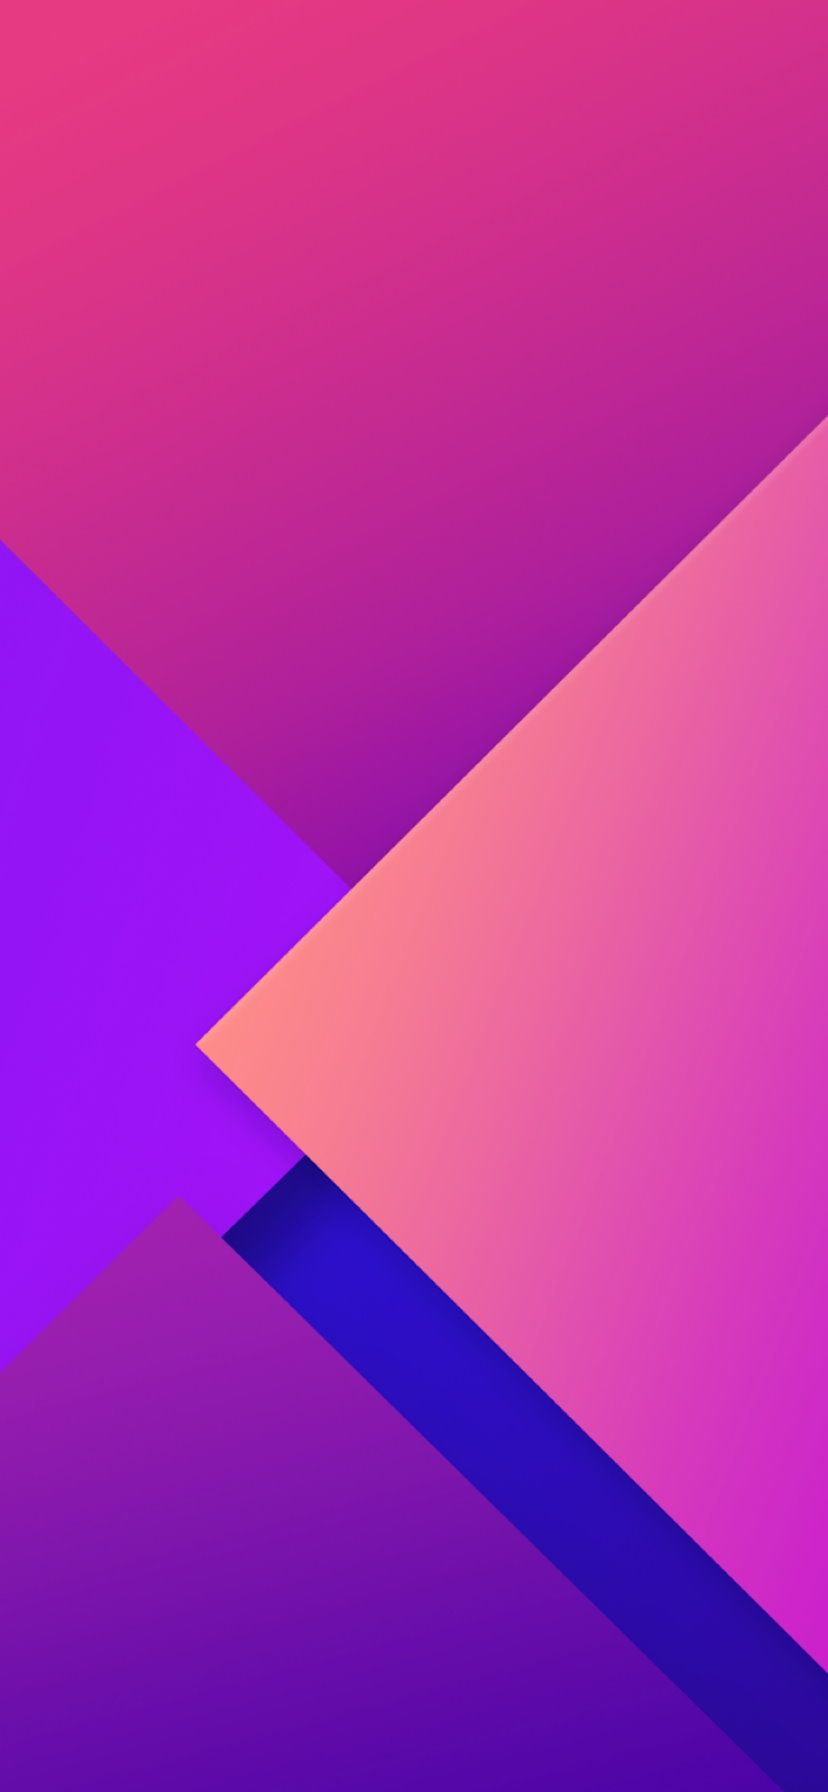 Wallpapers Iphone Xr Pack 1 W 2019 Tapety